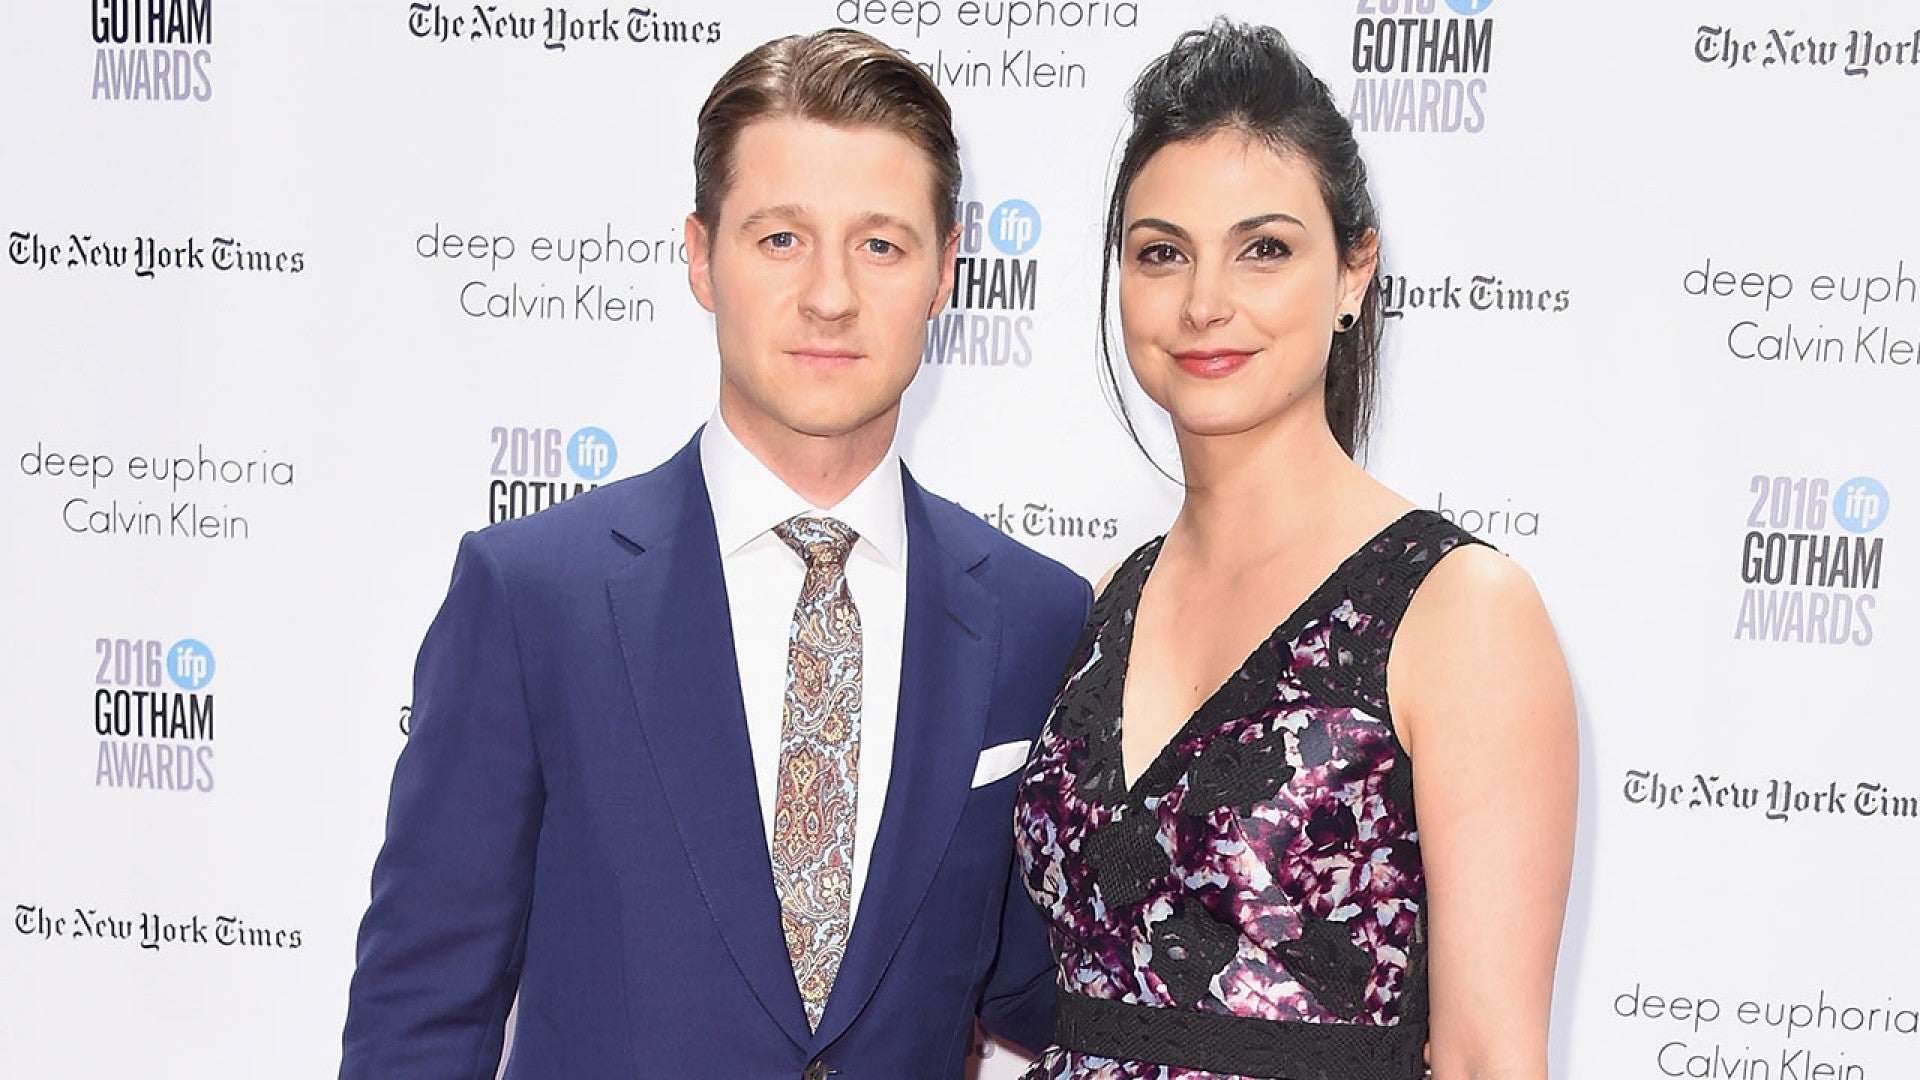 Ben Mckenzie Reveals He First Met Fiancee Morena Baccarin On Set Of The Oc Admits He Blew Her Off Entertainment Tonight